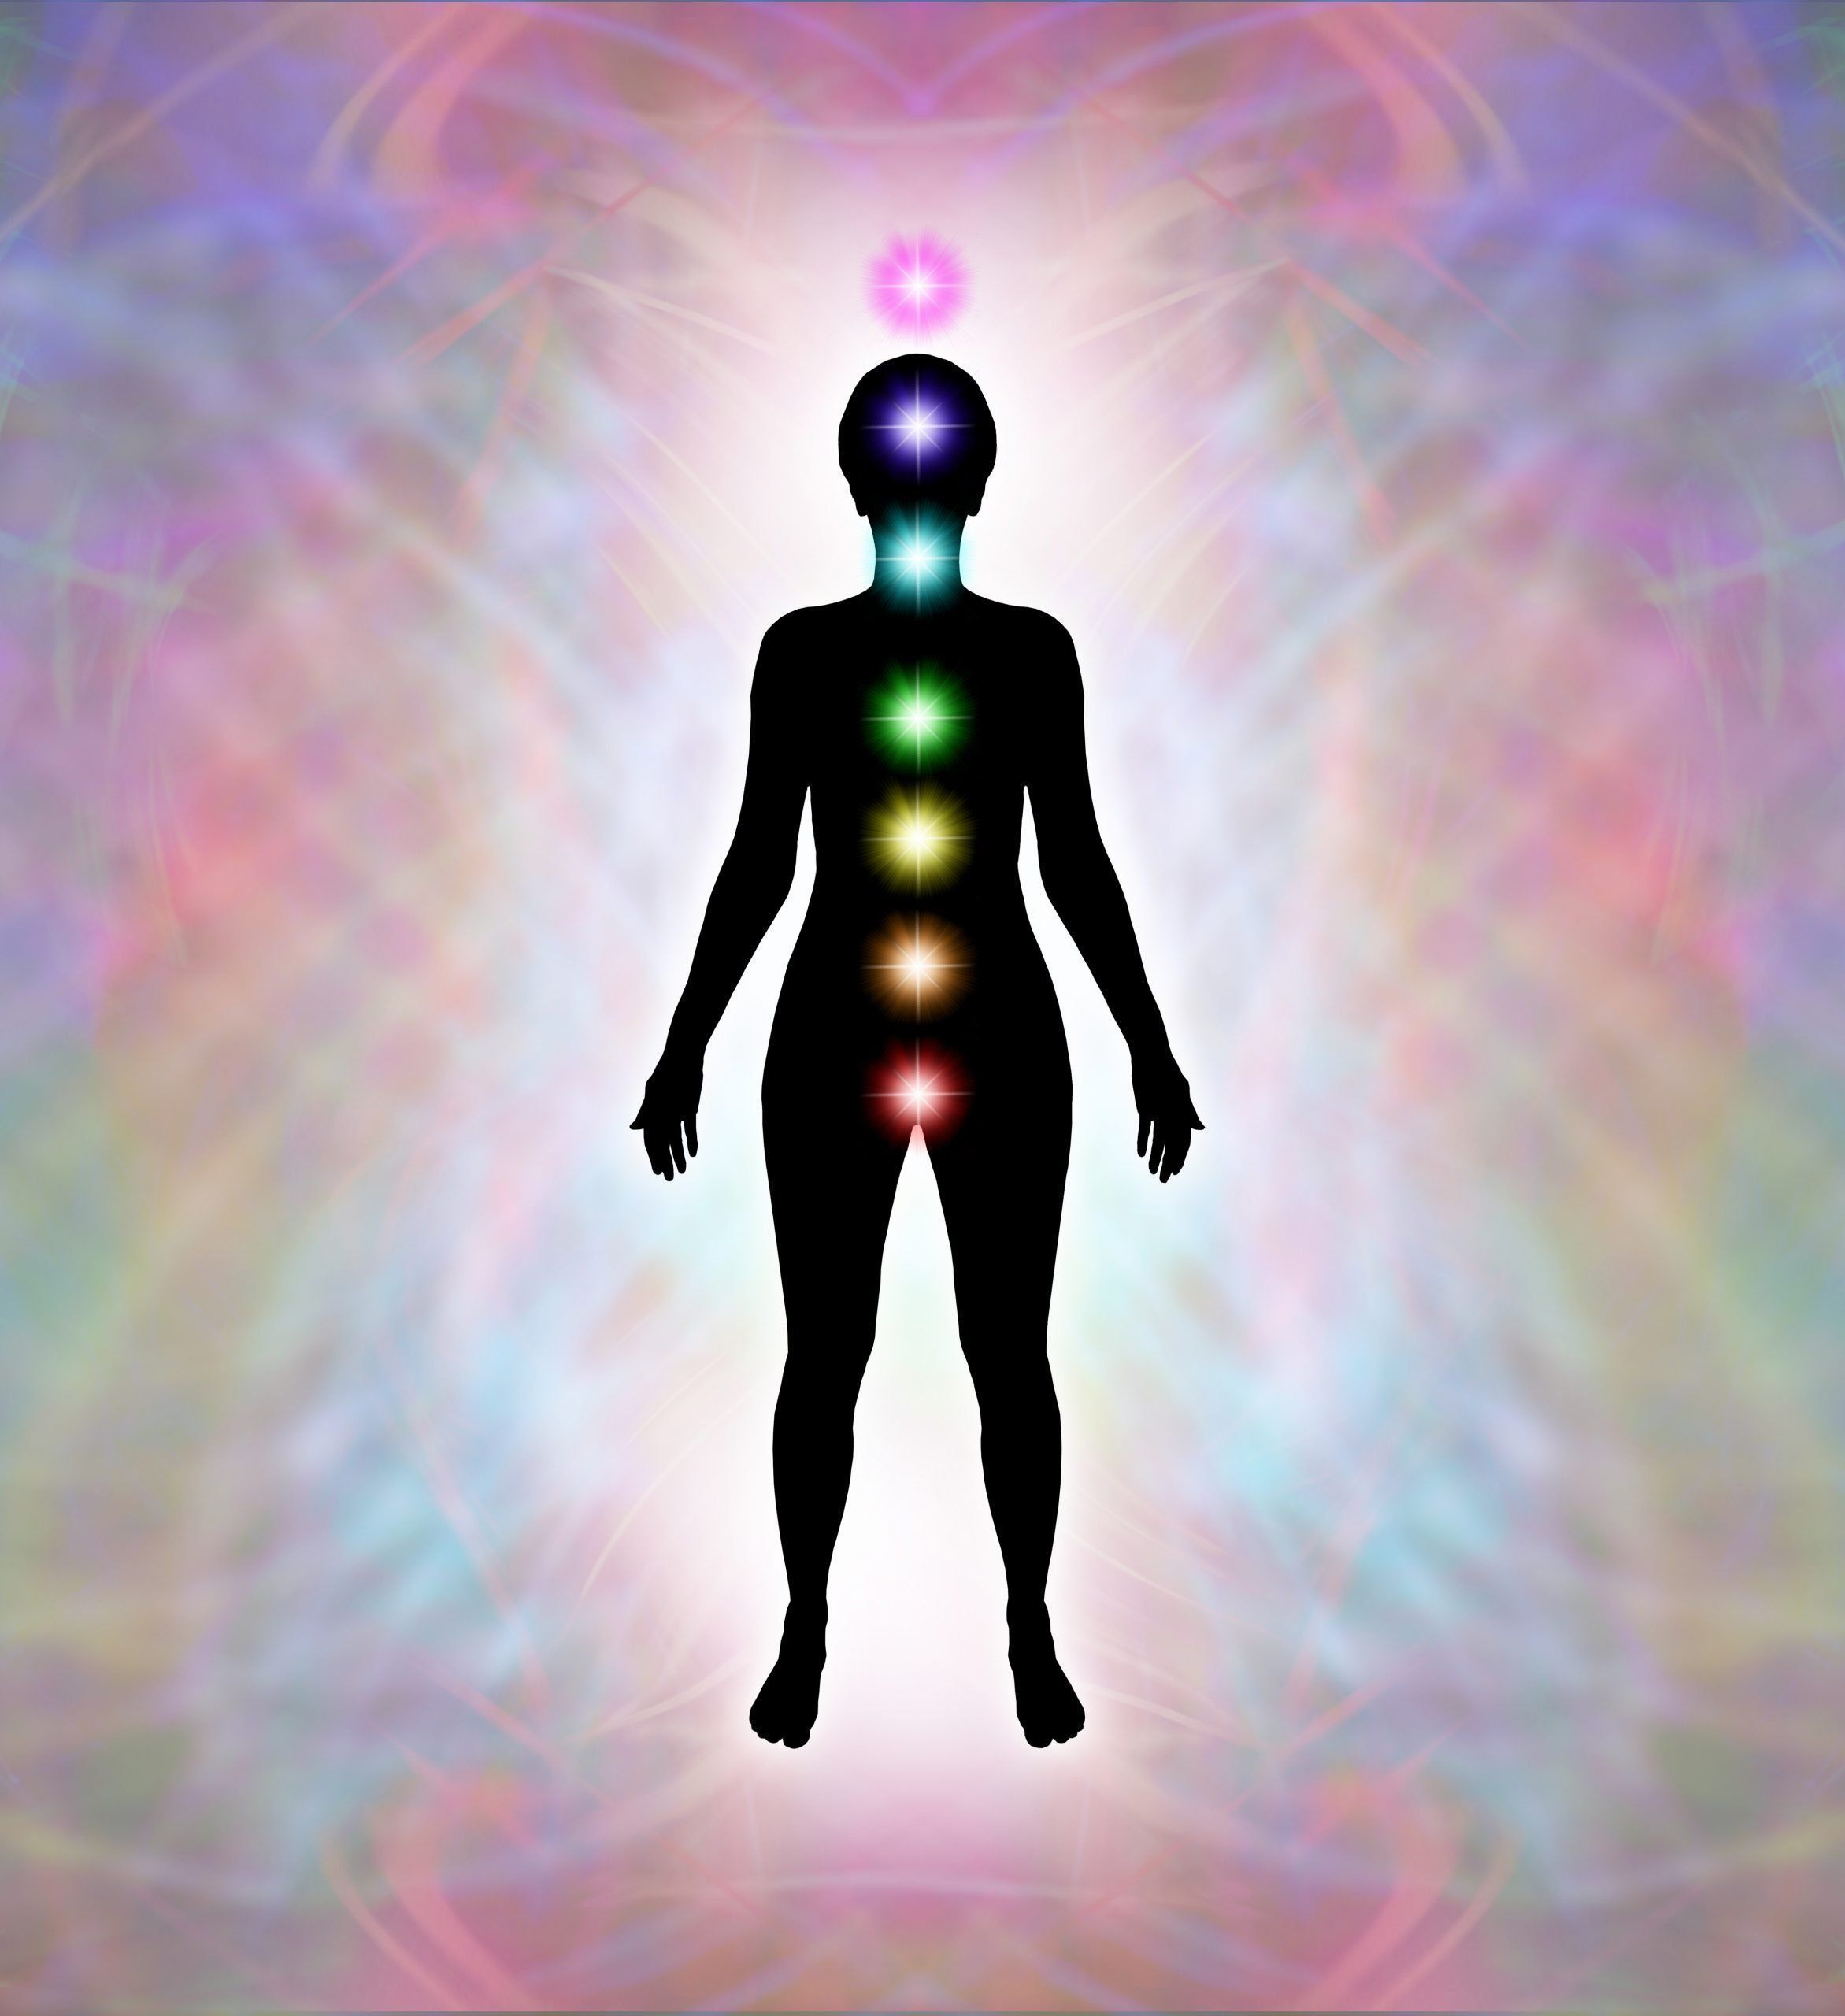 Empowered Goddess - Clearing Your Auric Field